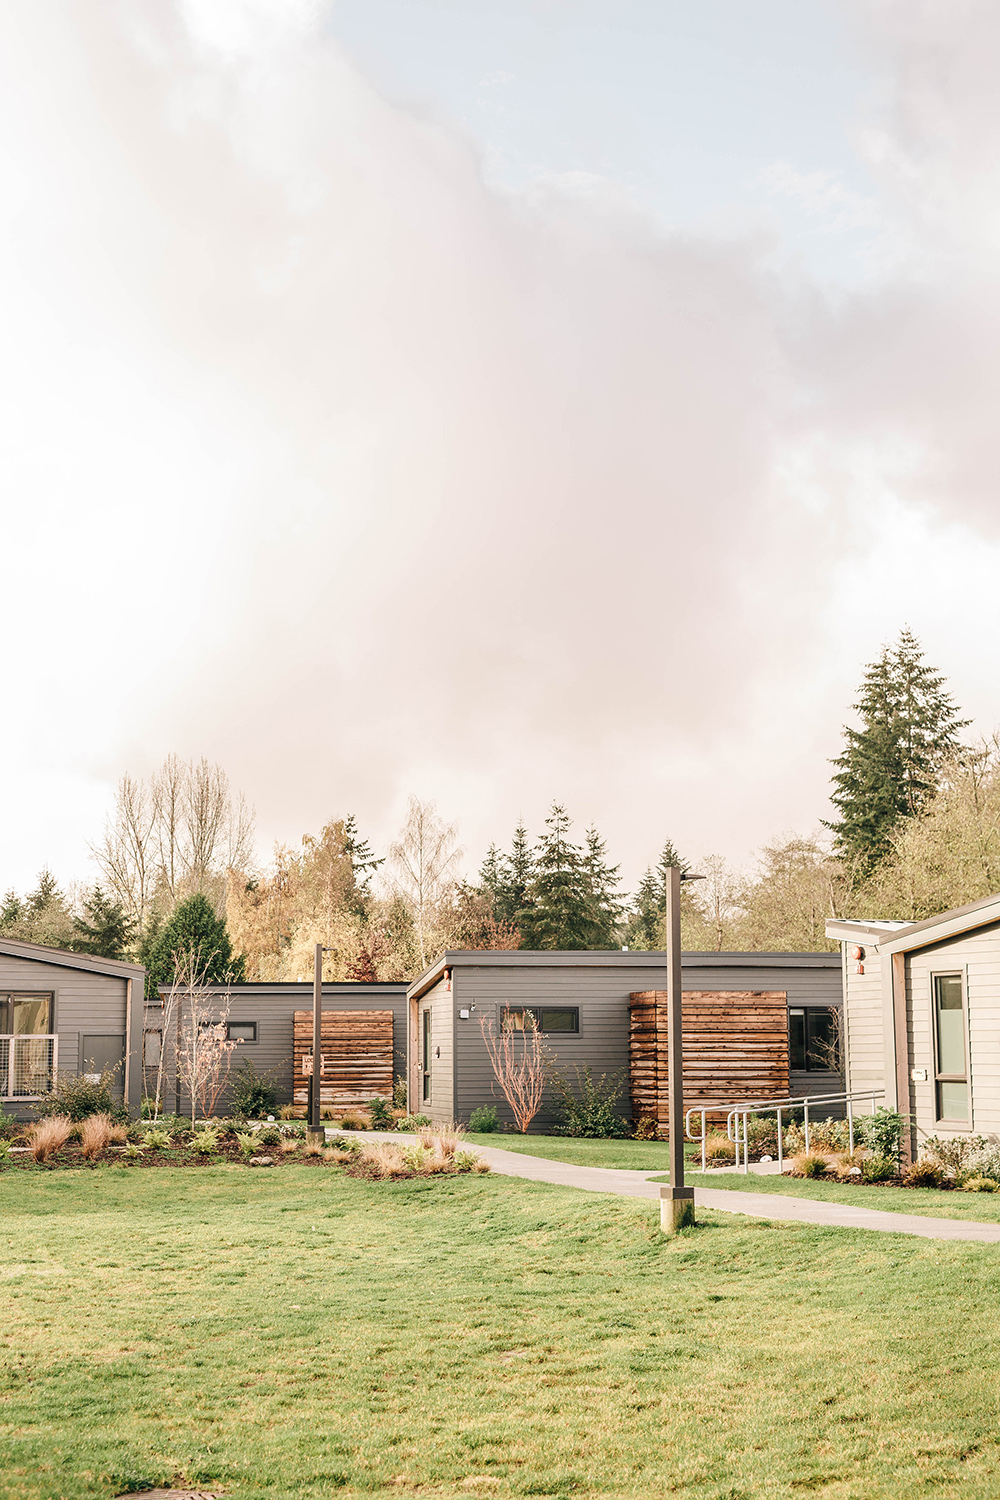 The Lodges on Vashon Exterior photo by Danny Owens - Vashon Island Travel Guide | Style and Cheek